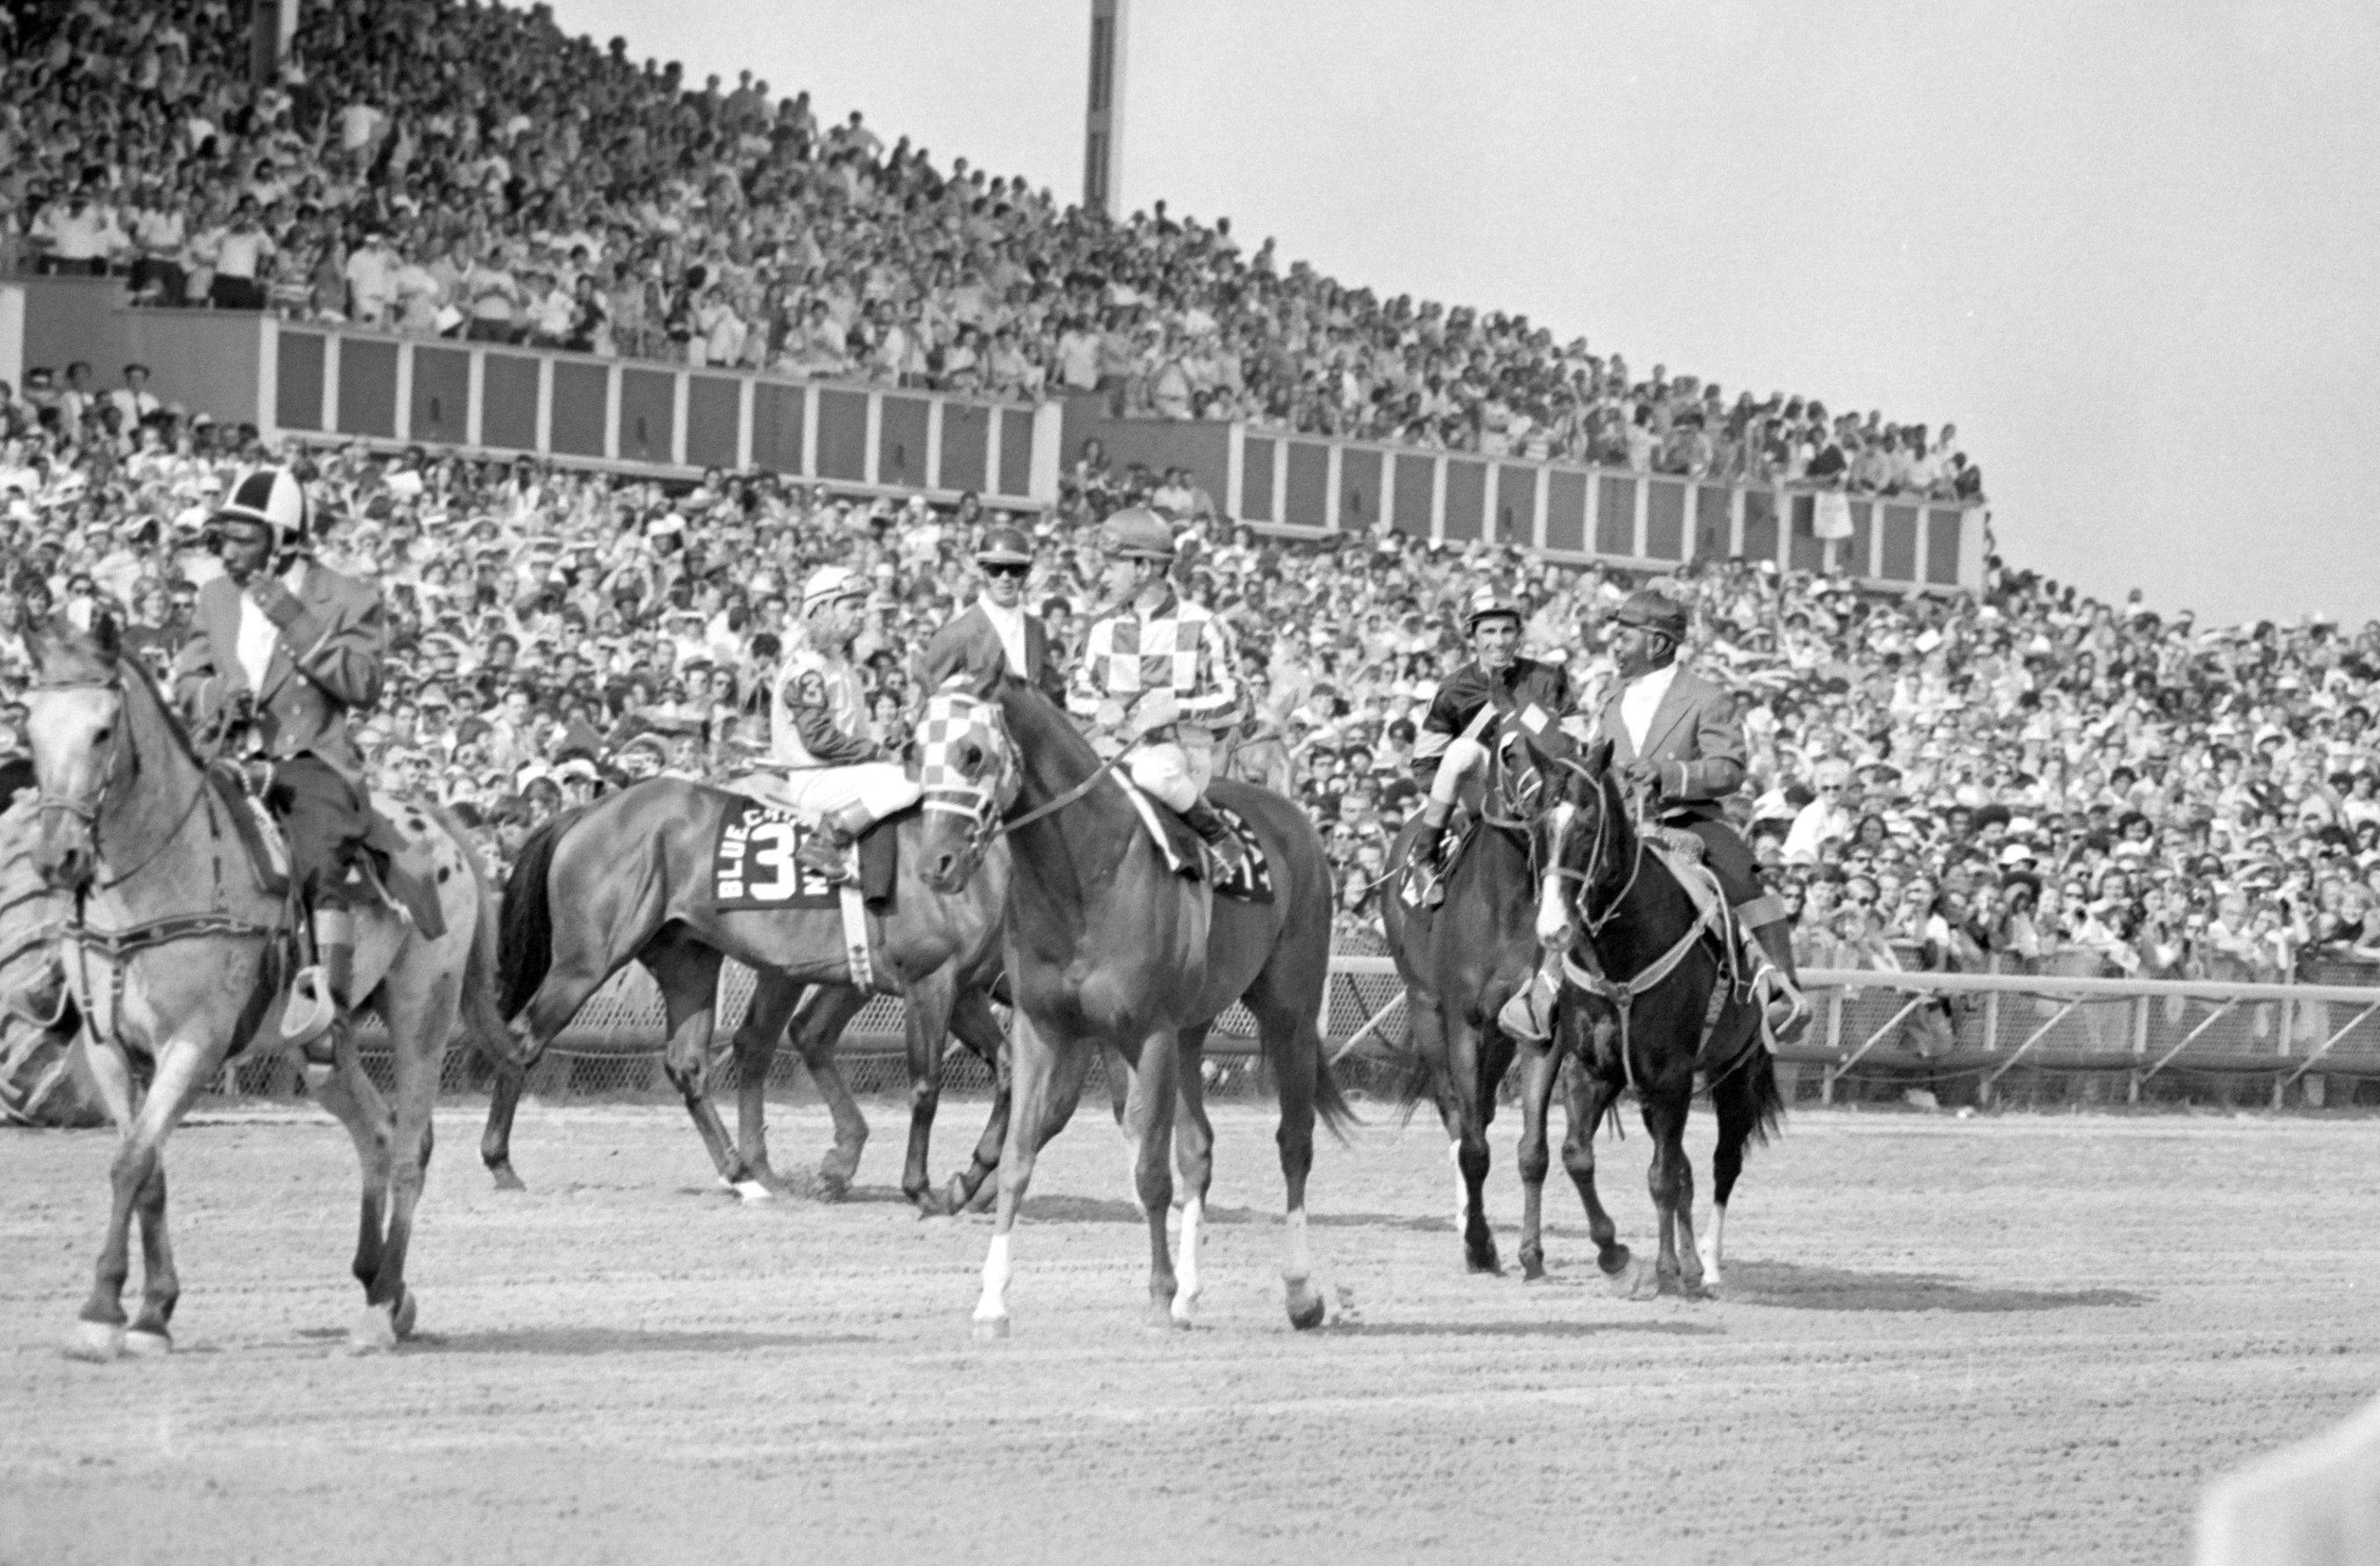 The legendary racehorse Secretariat visits Arlington Park for the Arlington Invitational on June 30, 1973.